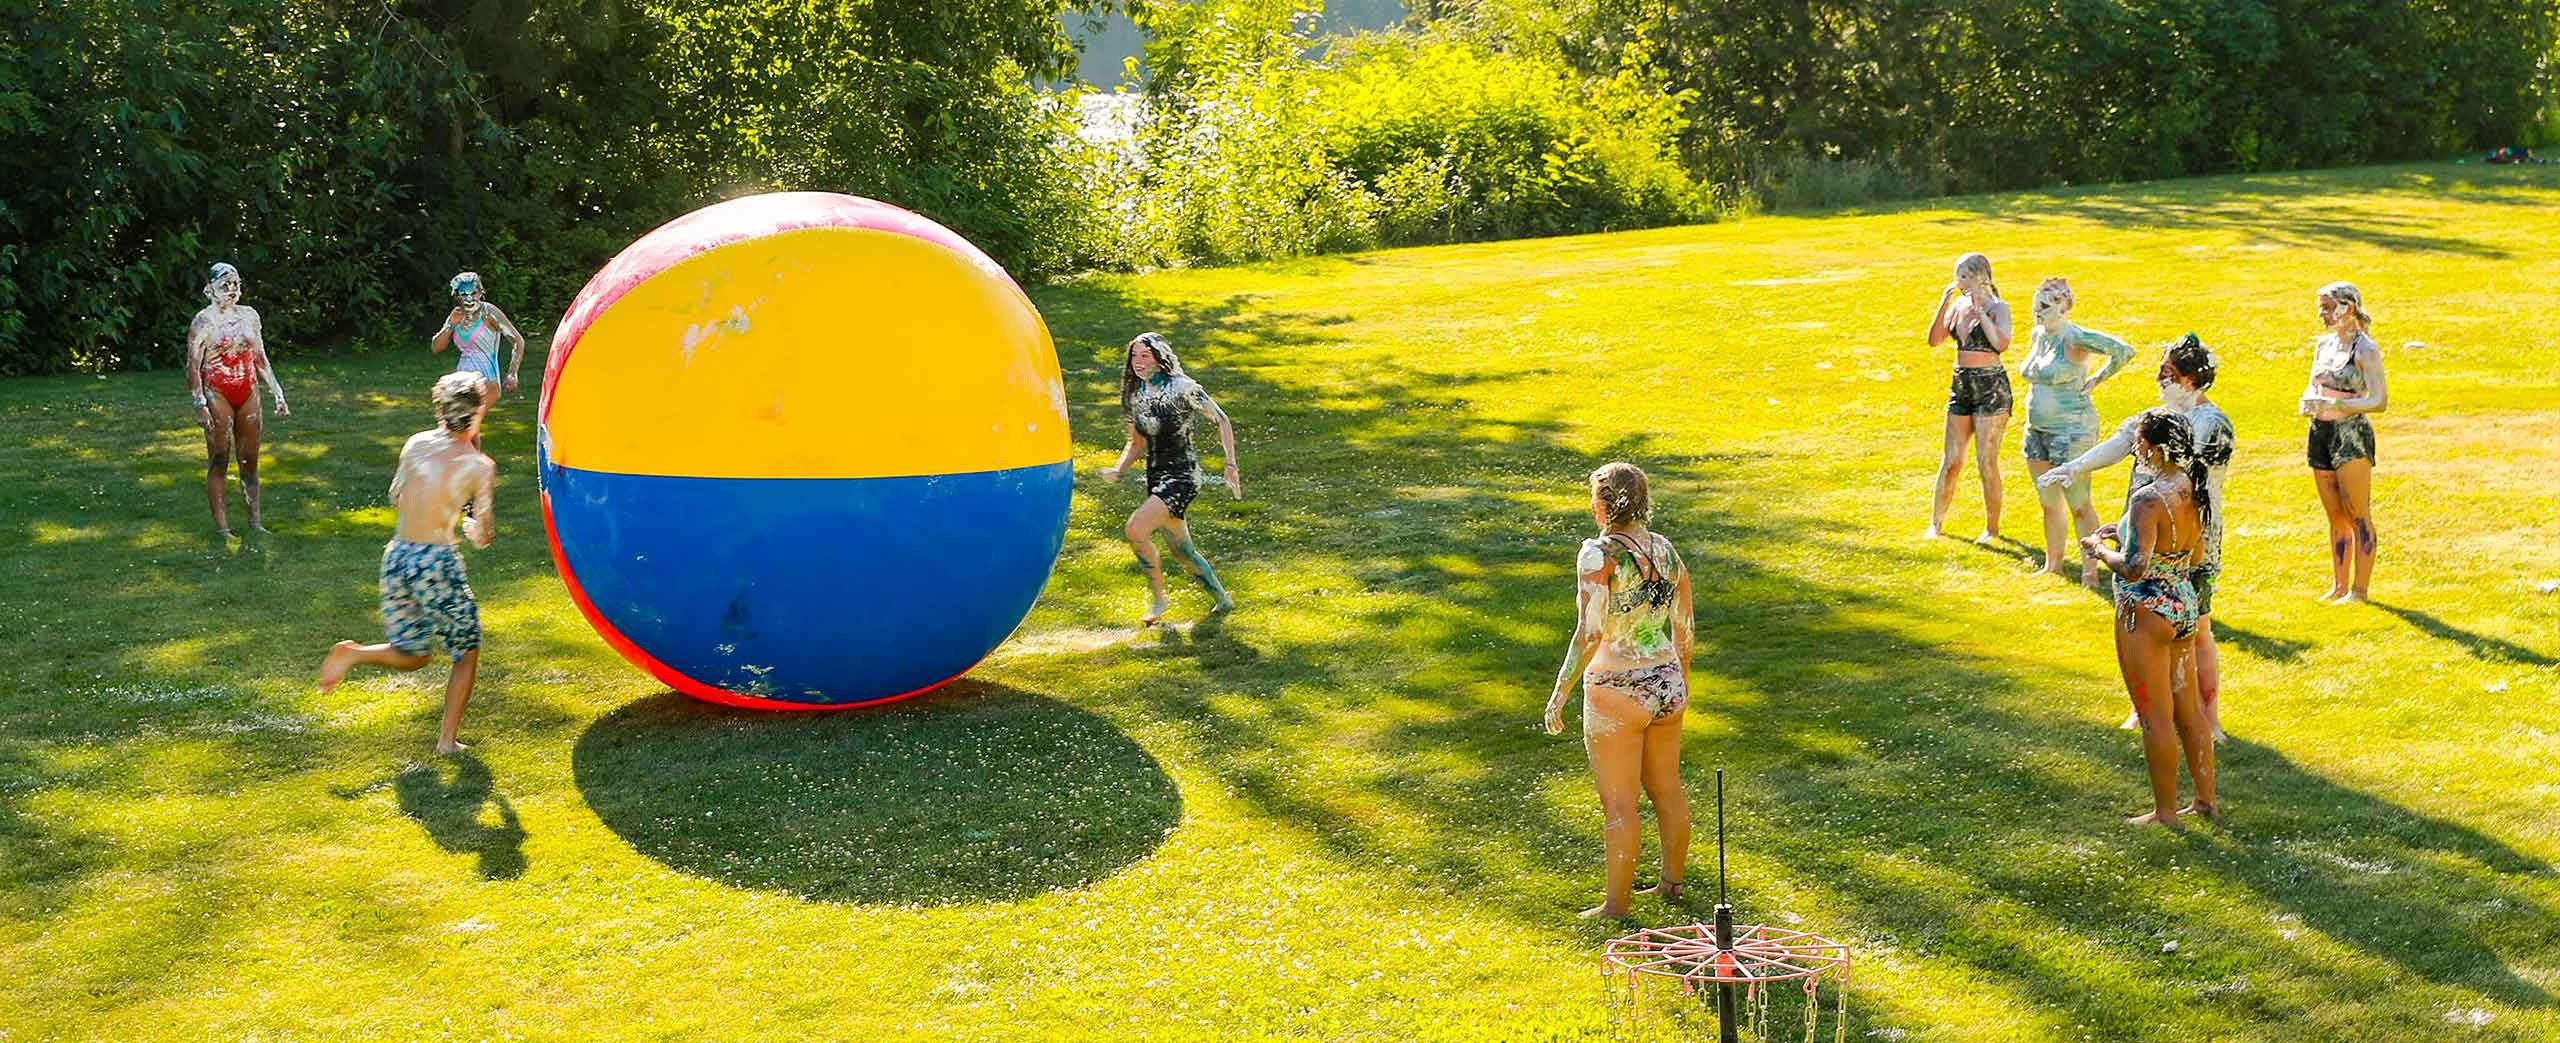 High school Camp kids playing with a 12 foot beach ball